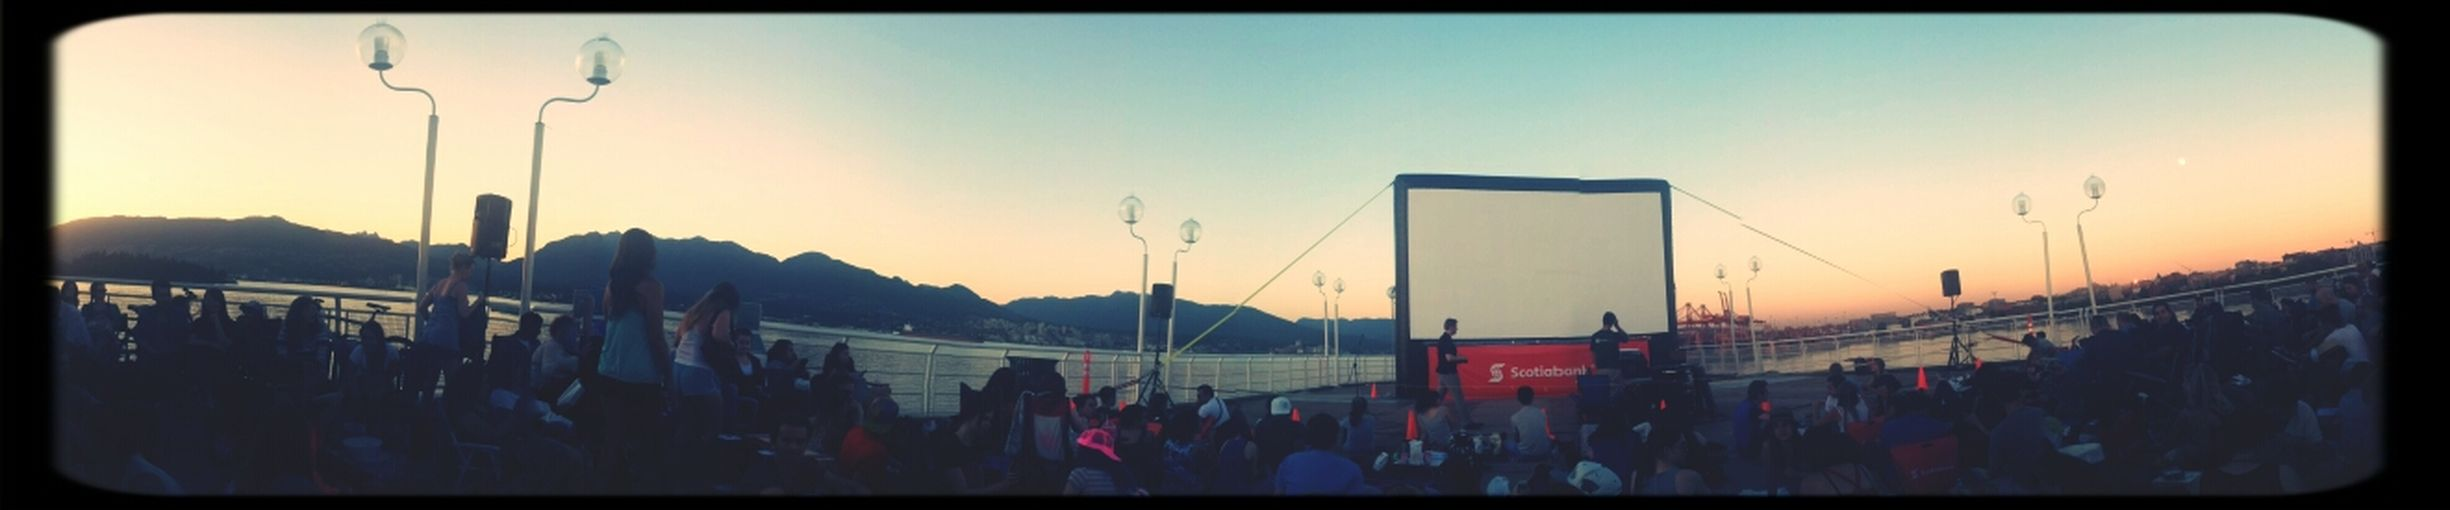 Outdoor movie at canada place!